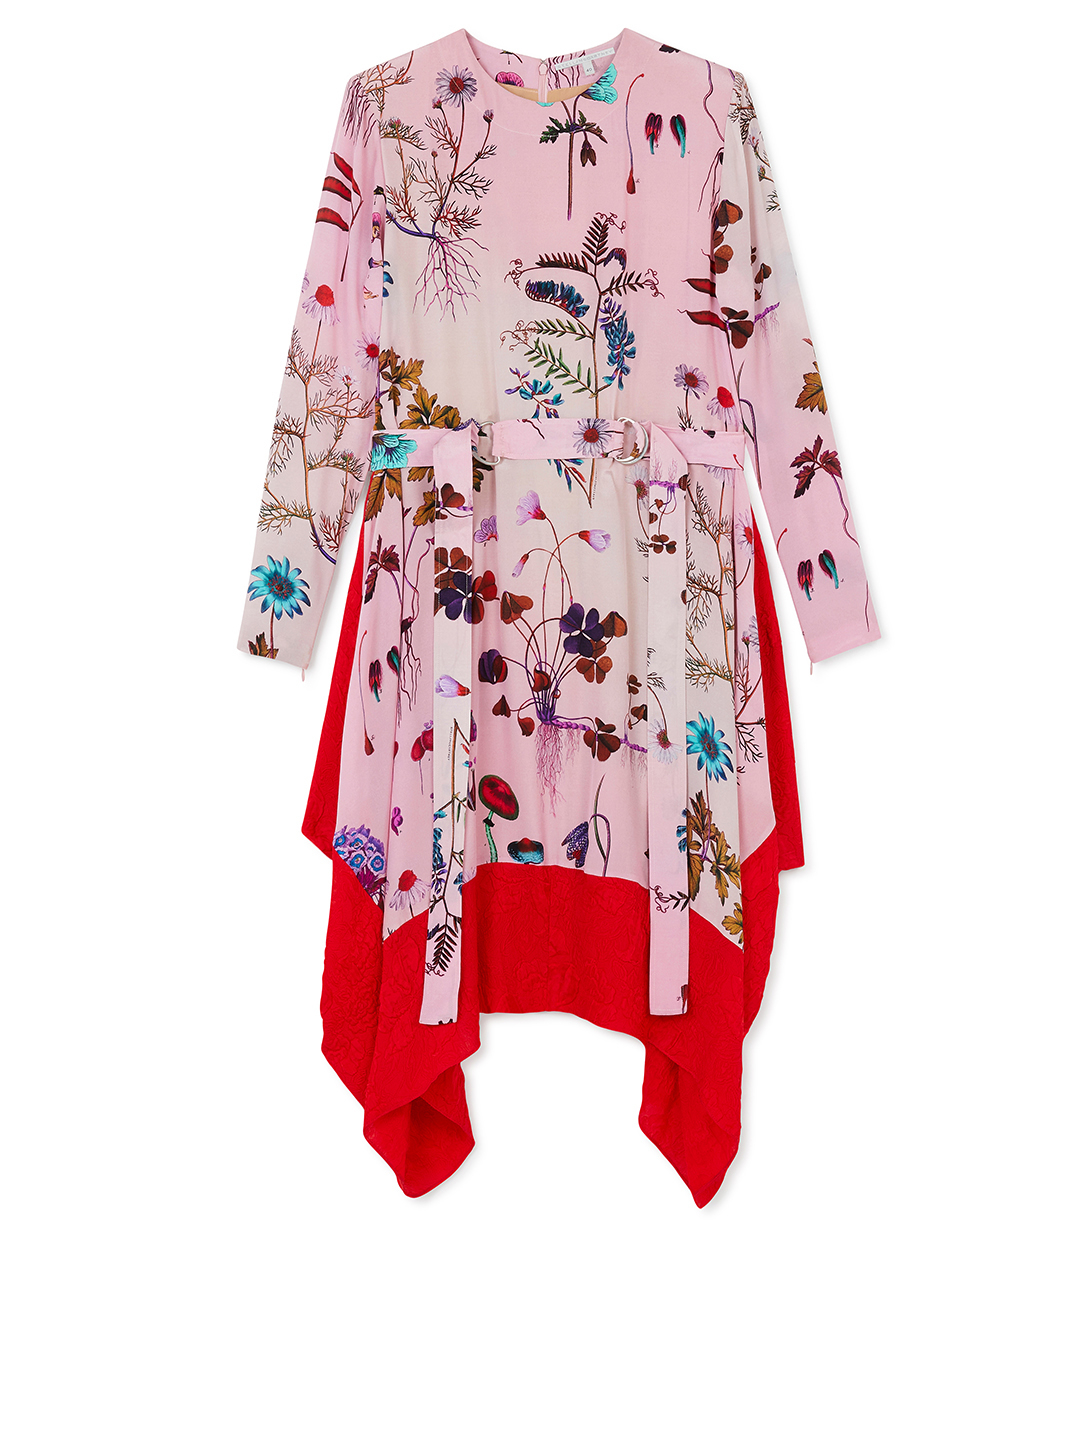 STELLA MCCARTNEY Silk Long-Sleeve Dress In Floral Print Women's Pink